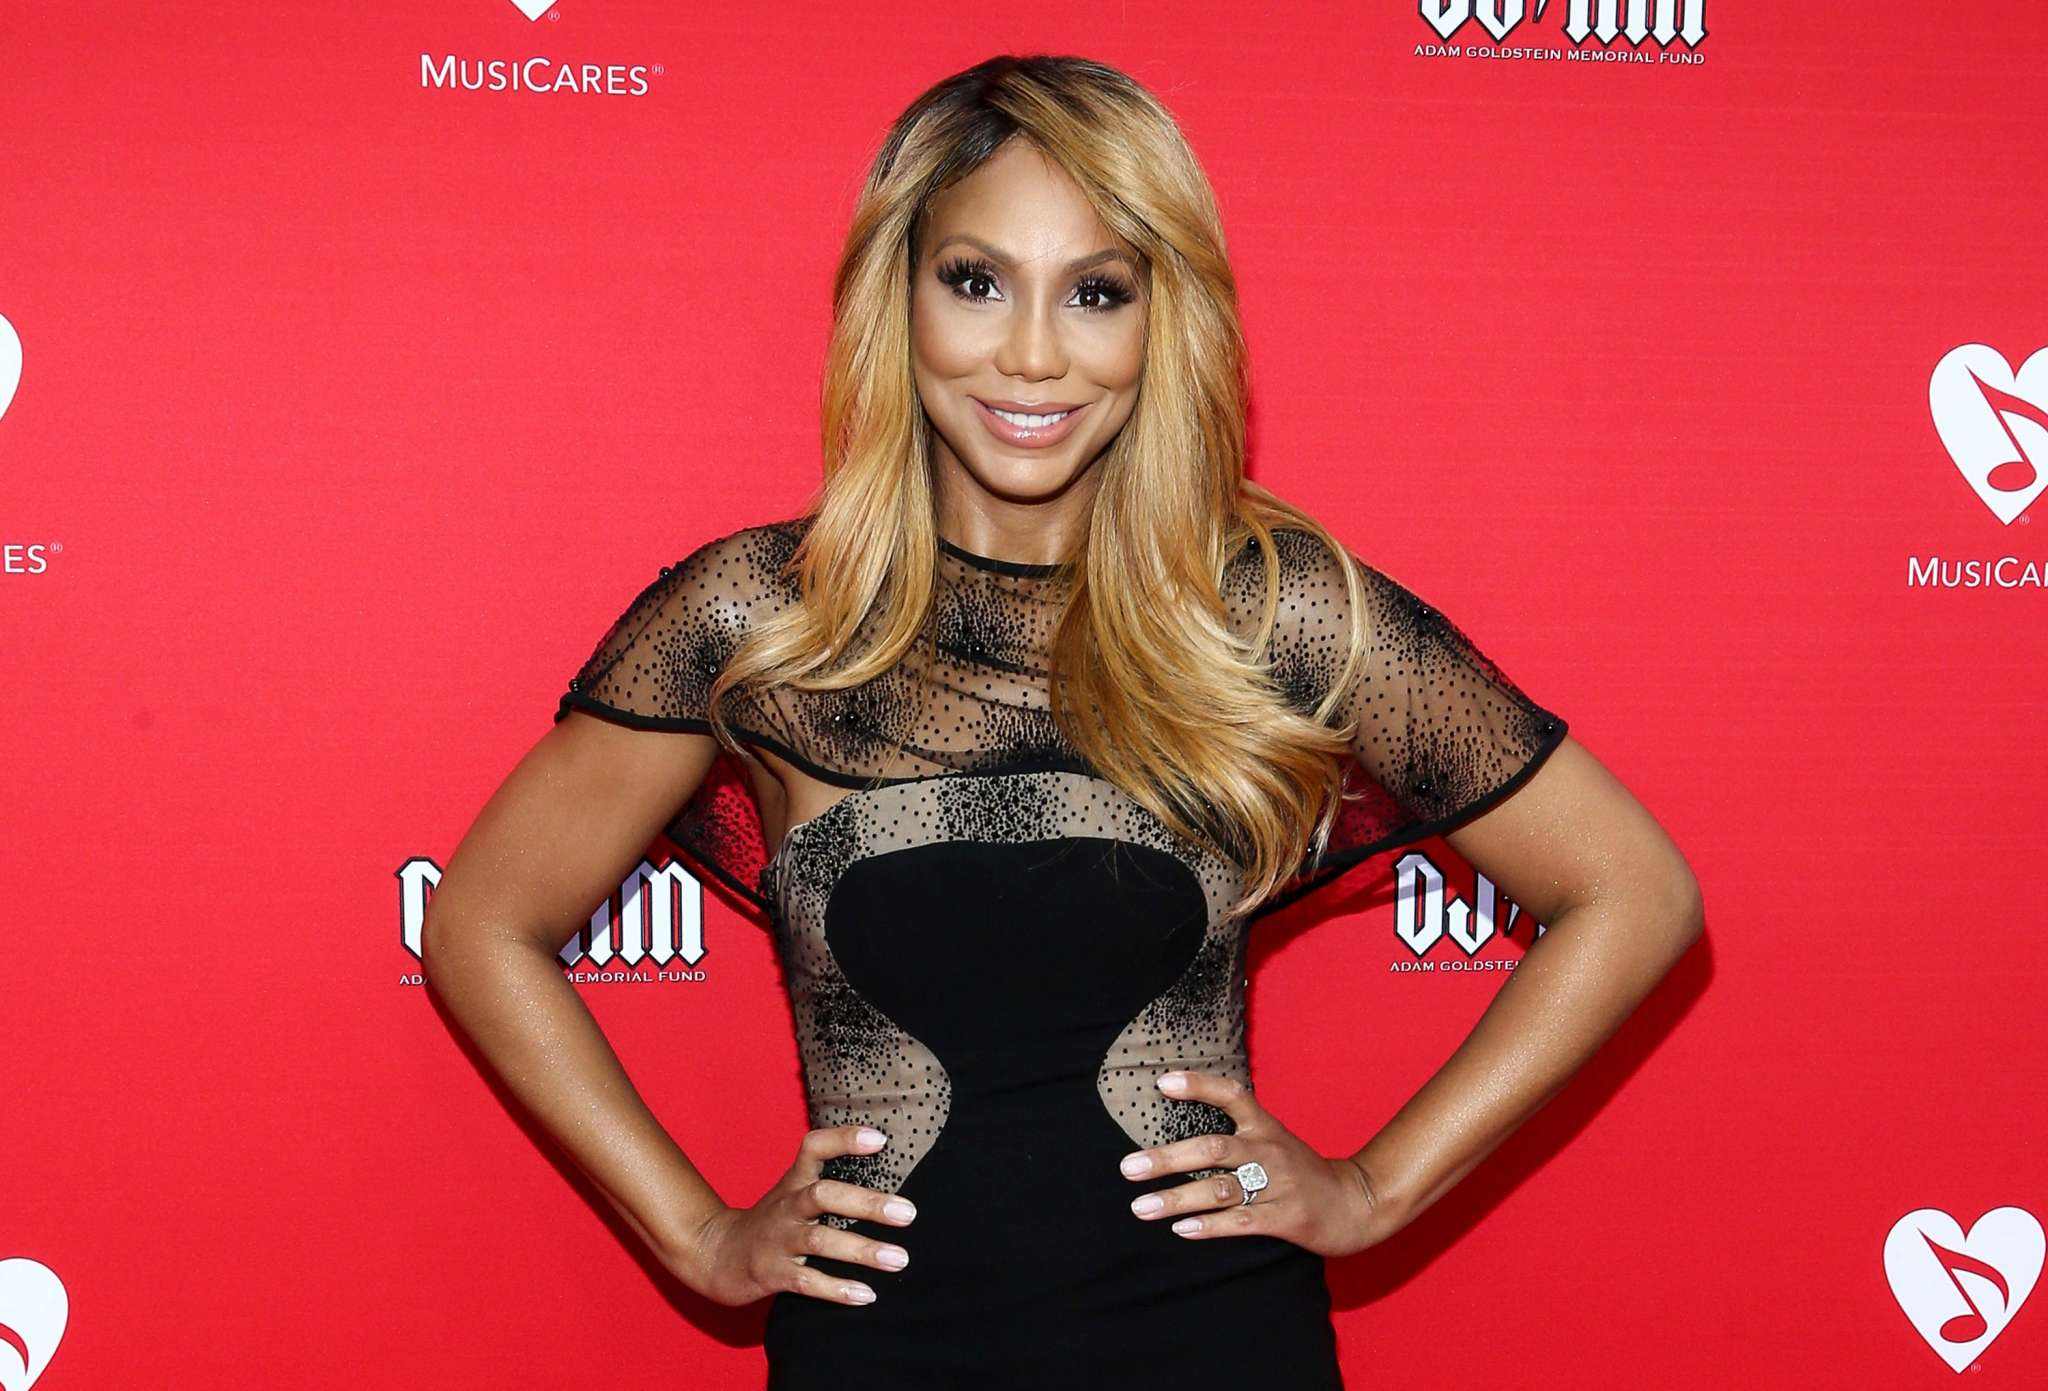 tamar-braxton-is-preparing-a-surprise-for-fans-check-it-out-here